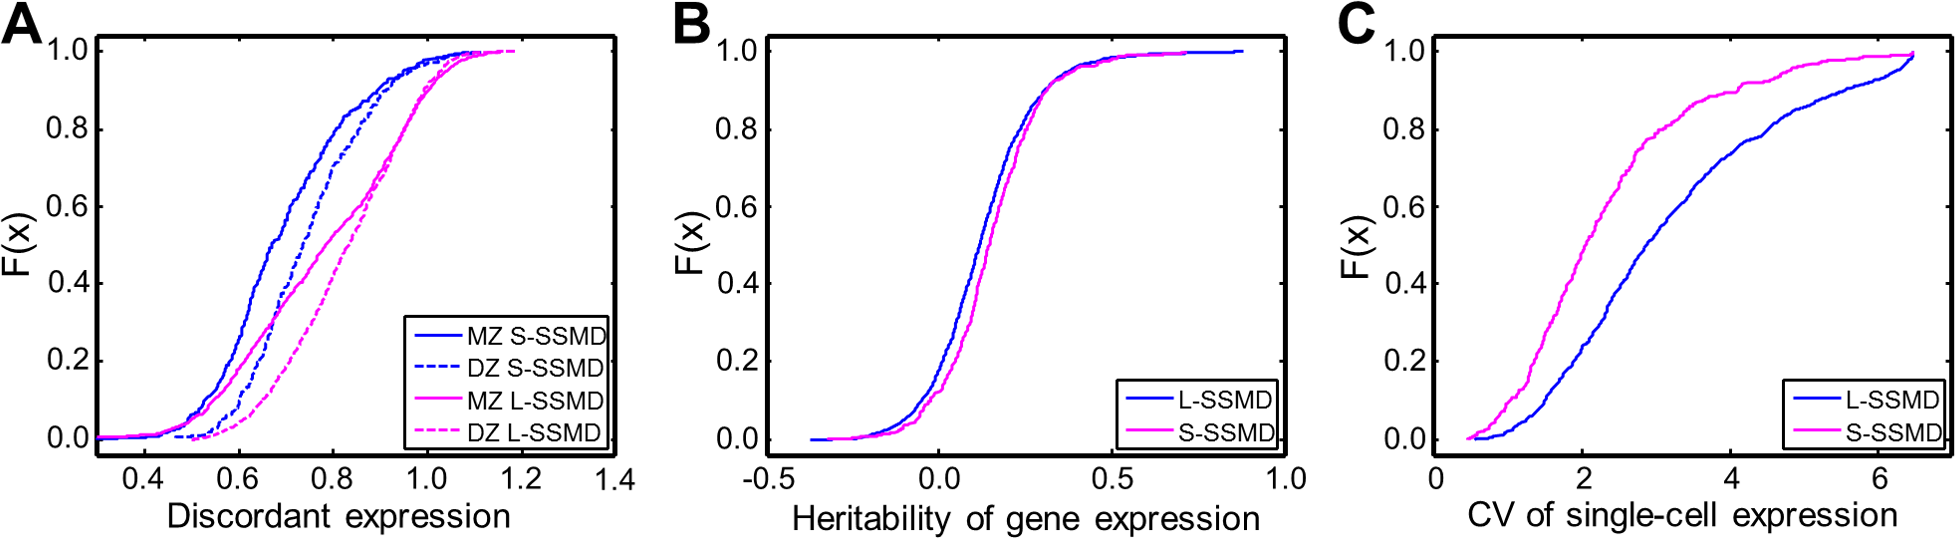 Differences in expression discordance, heritability and variability between L- and S-SSMD genes.